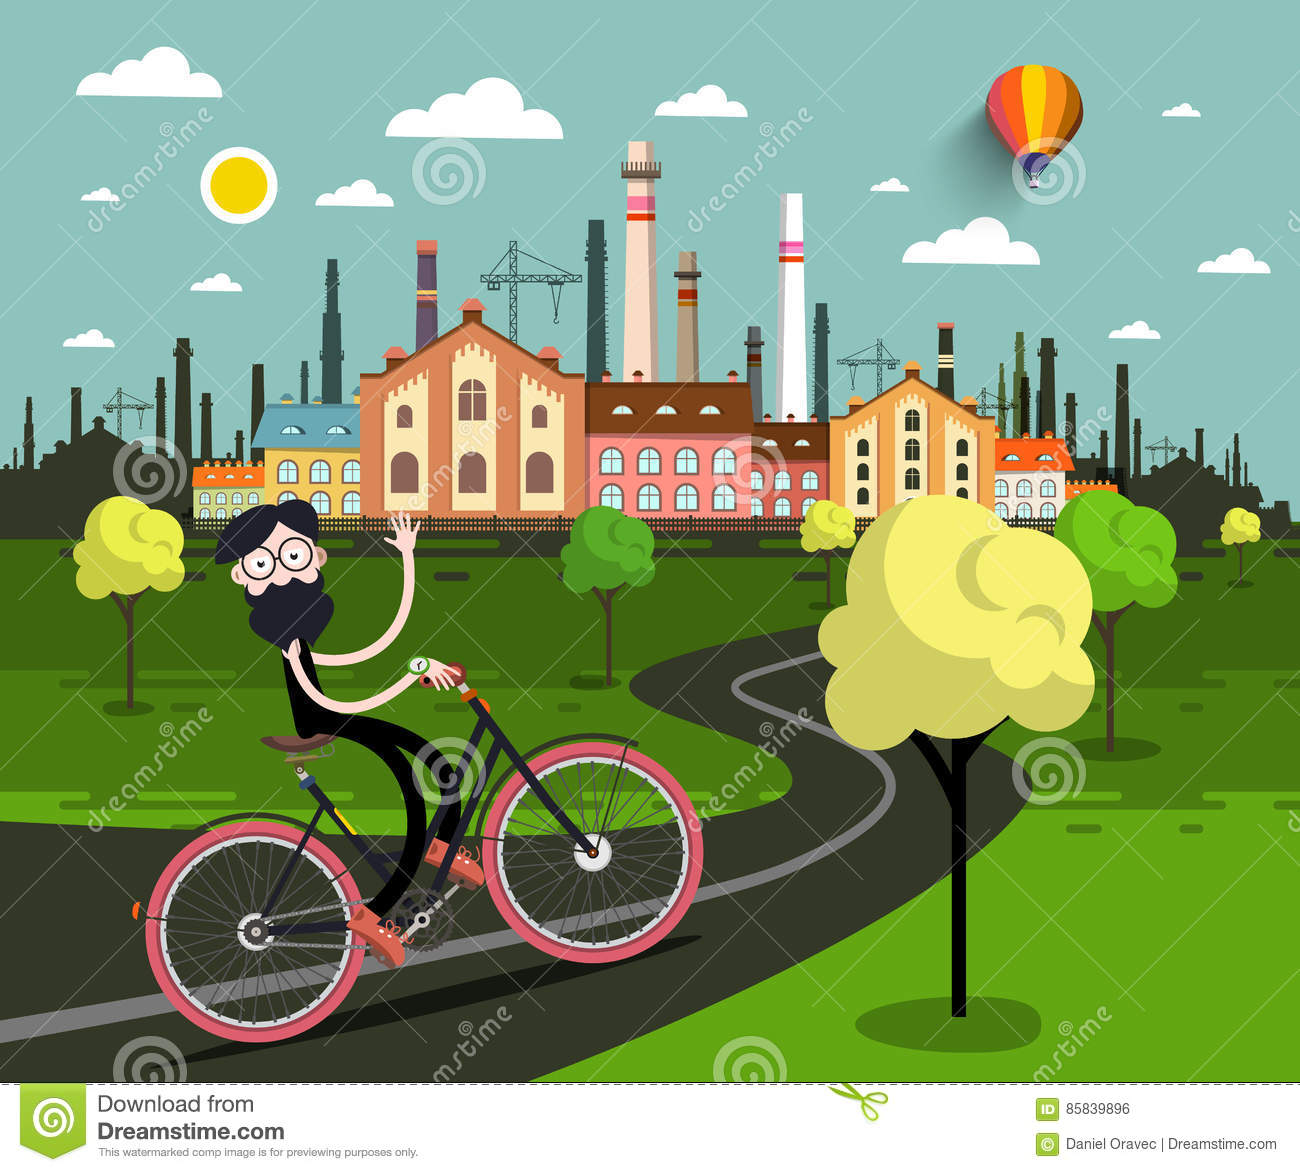 Man on Bicycle with Industrial